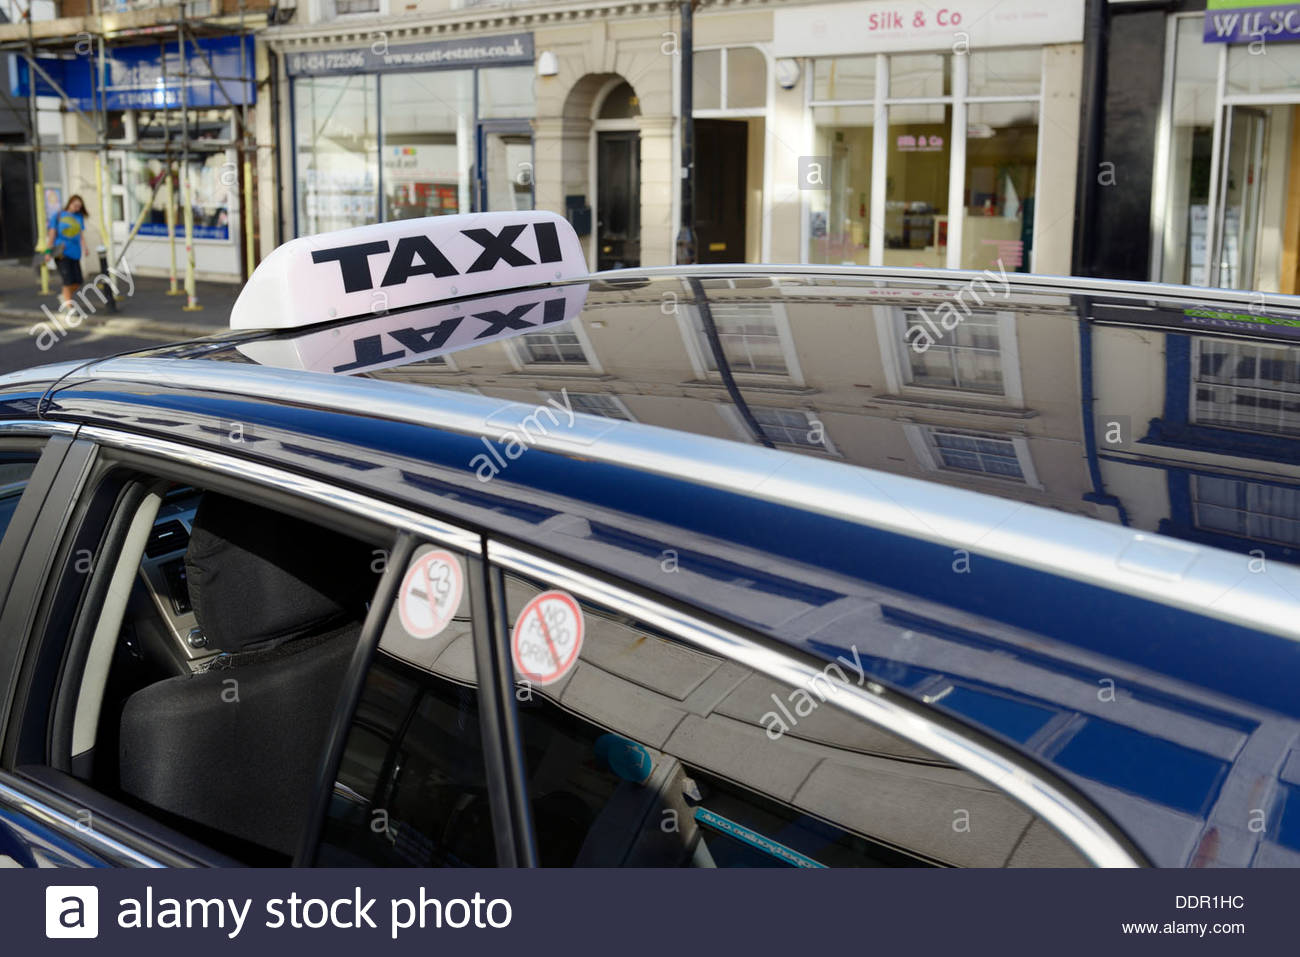 Taxi cab in street, Hastings, East Sussex, England UK - Stock Image